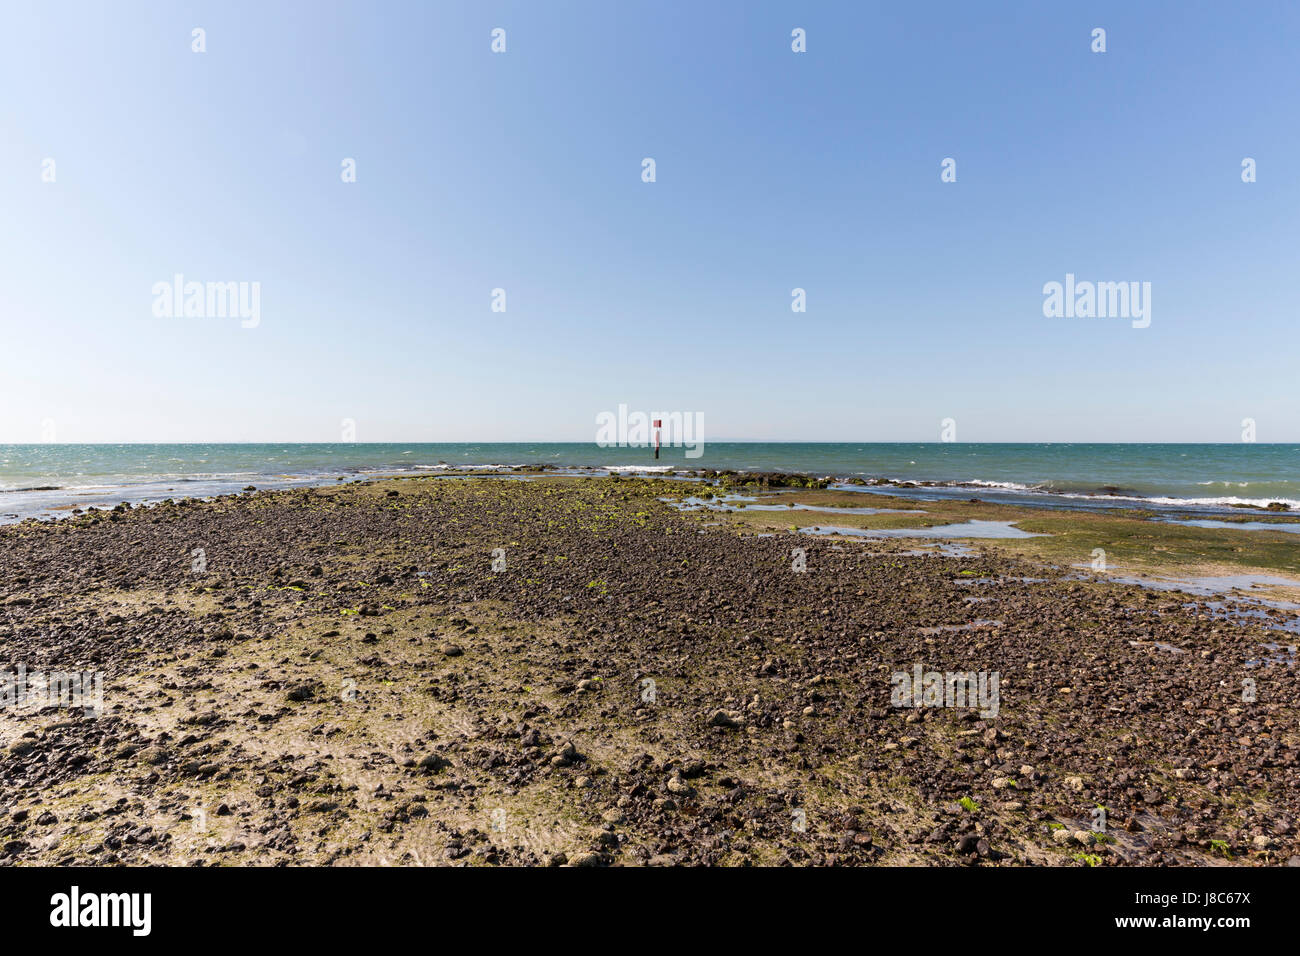 Beach with muds. - Stock Image